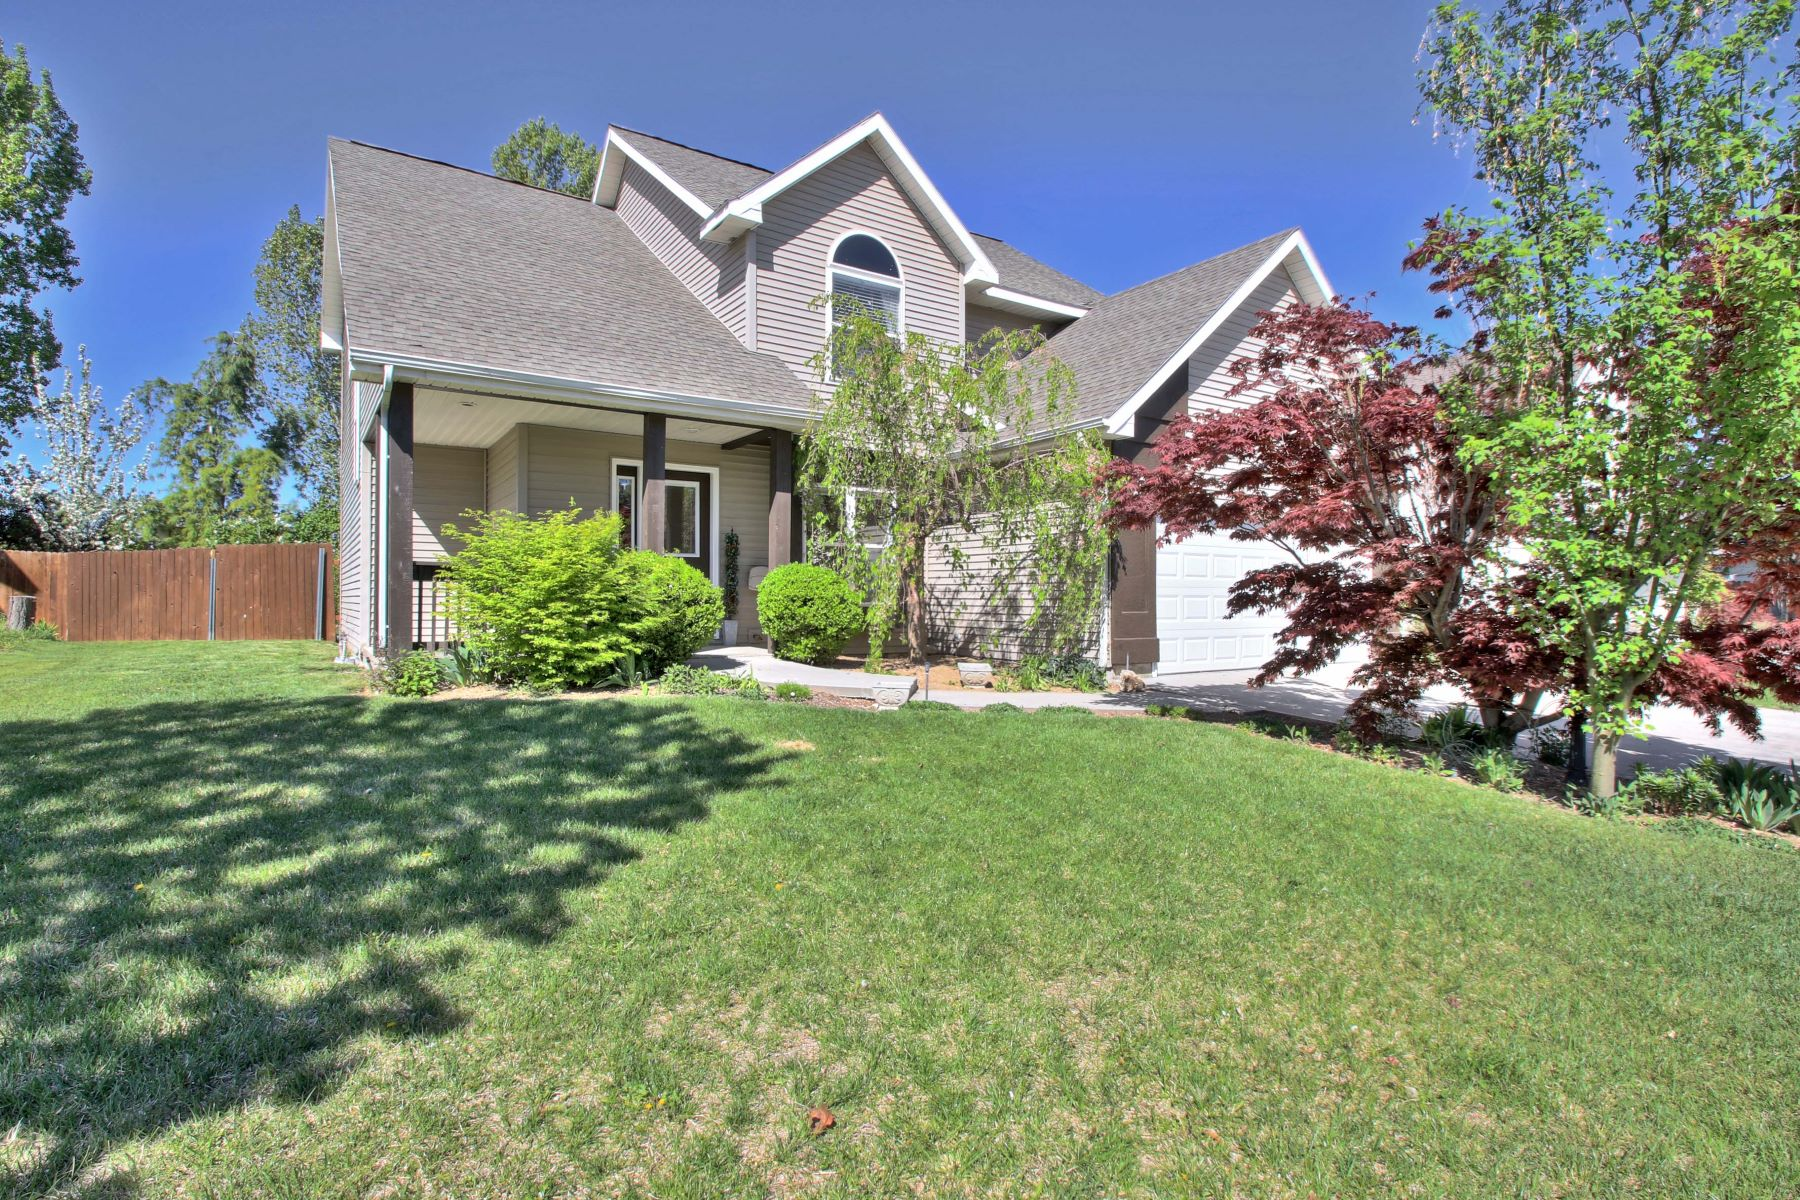 Single Family Home for Active at 1299 Crestmont Dr., Meridian 1299 N Crestmont Dr Meridian, Idaho 83642 United States